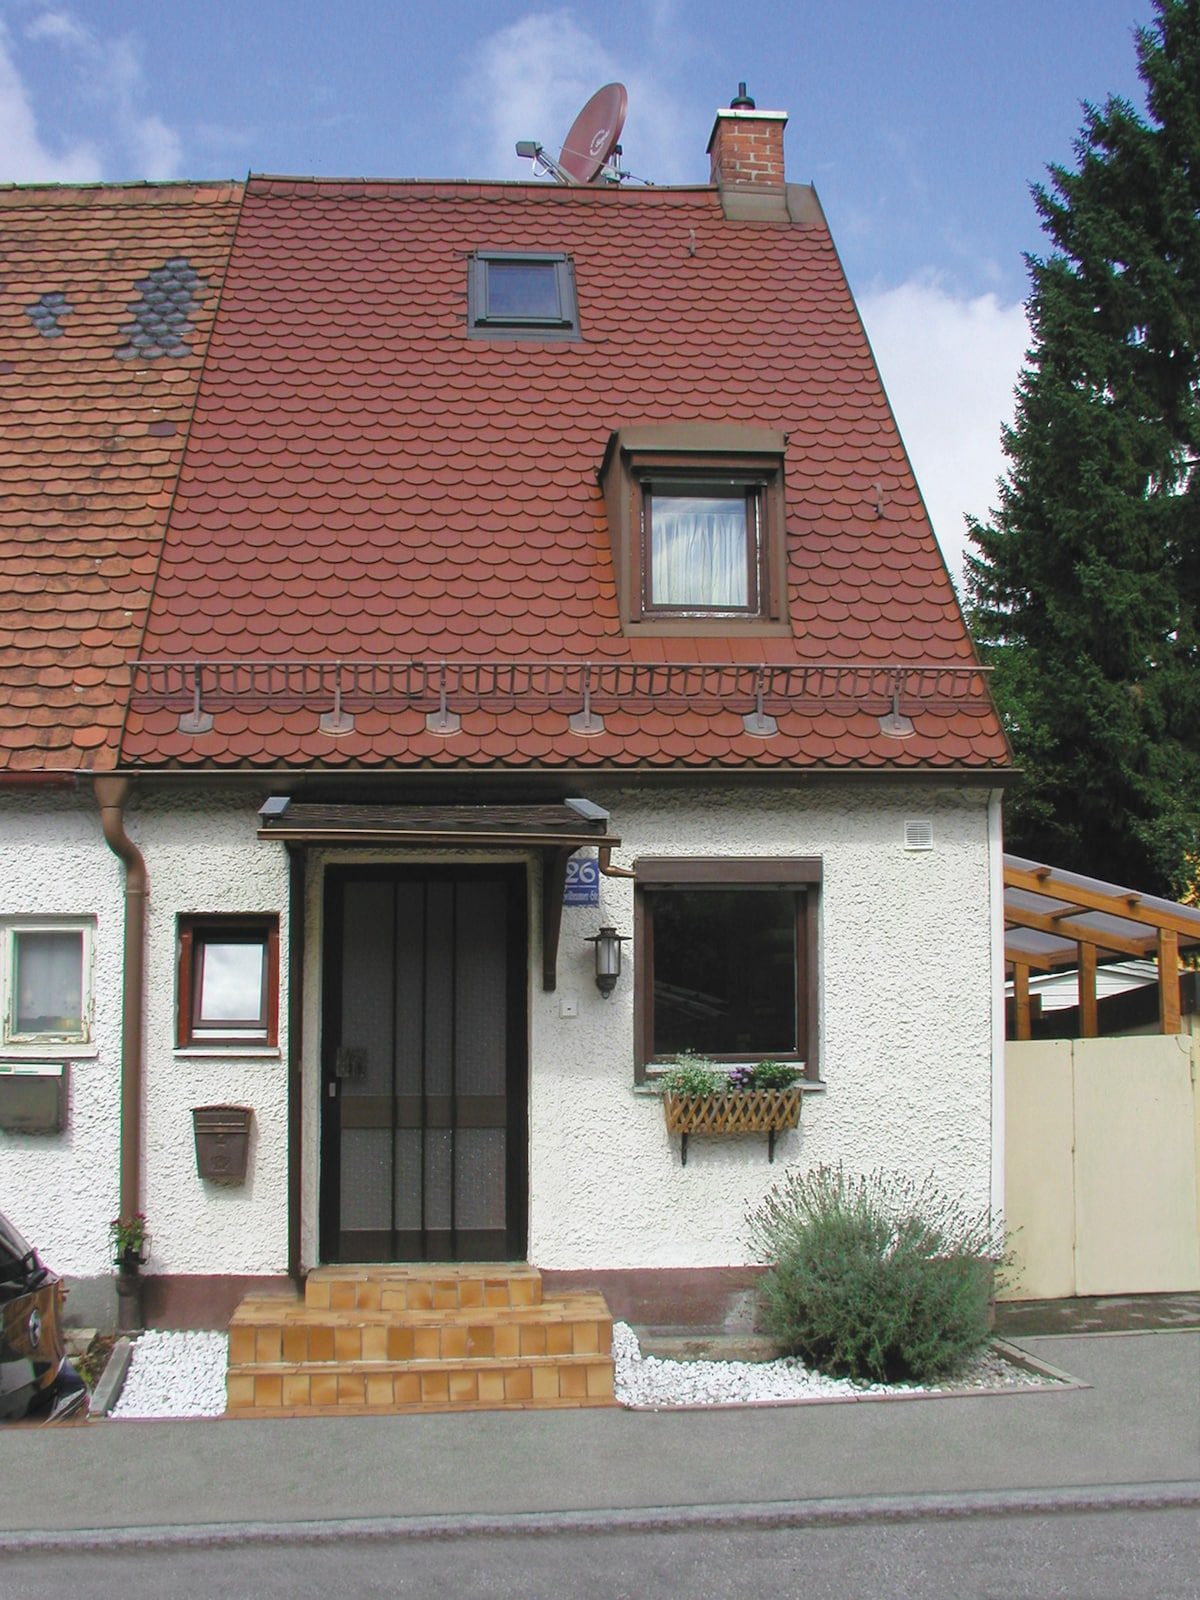 Holydayhouse near city,near Messe